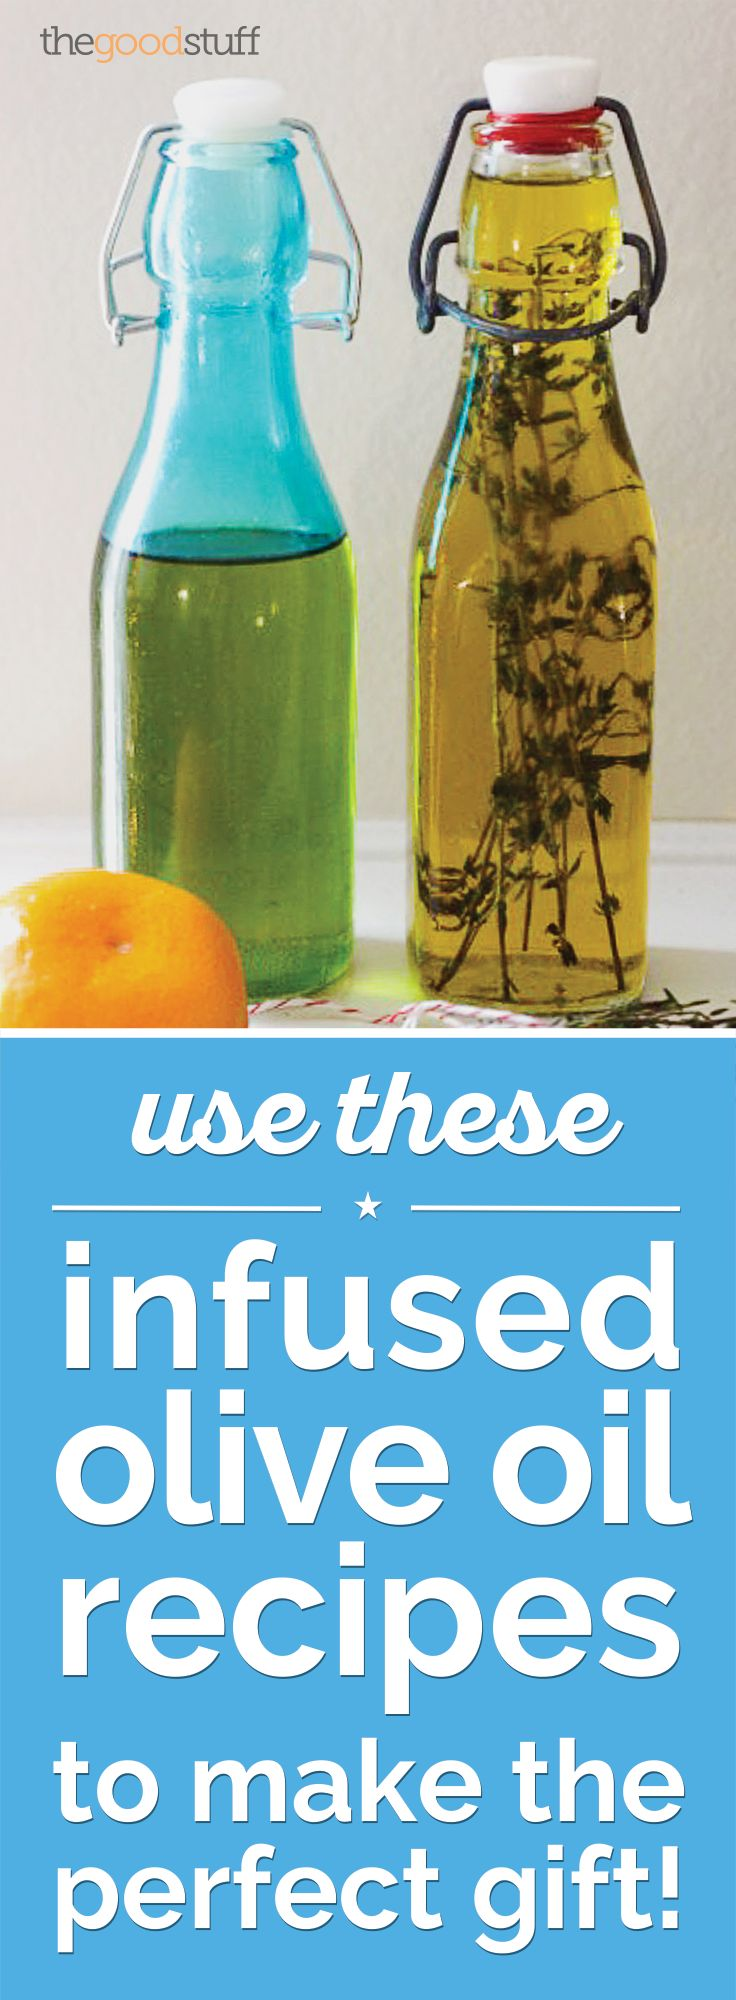 Use These Infused Olive Oil Recipes to Make the Perfect Gift! | thegoodstuff